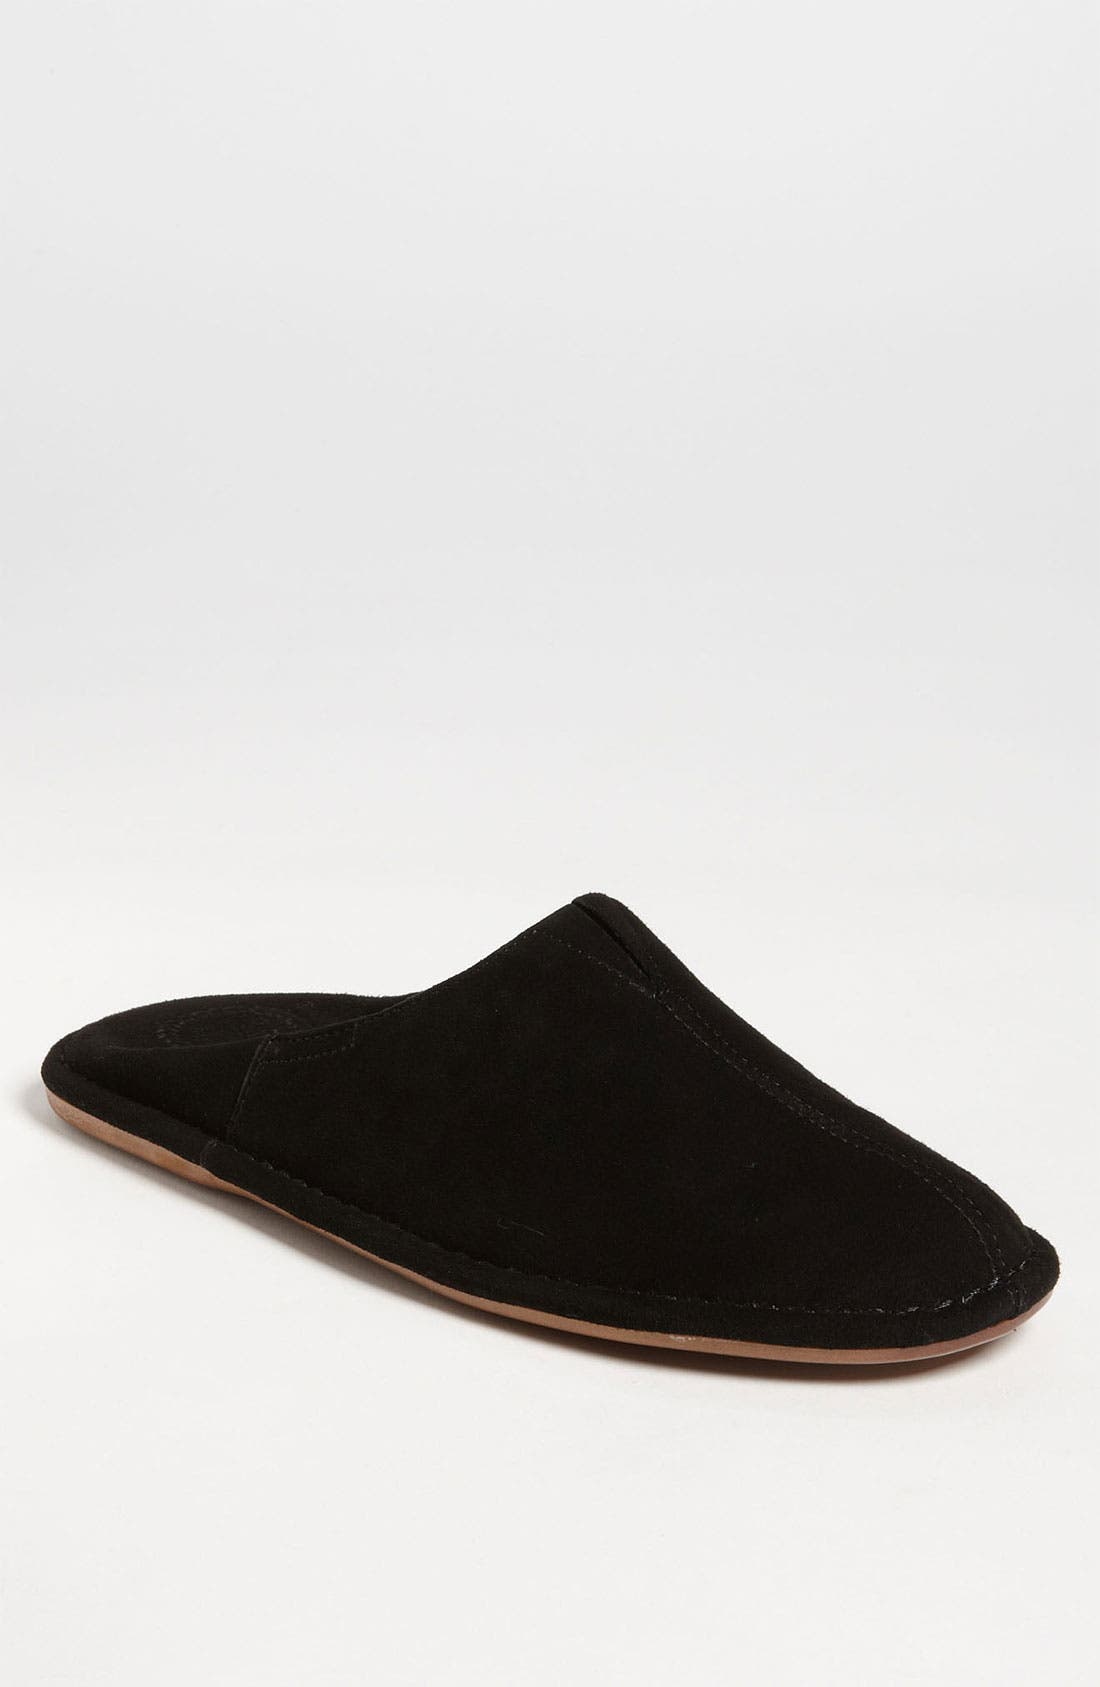 Main Image - L.B. Evans 'Pierce' Slipper